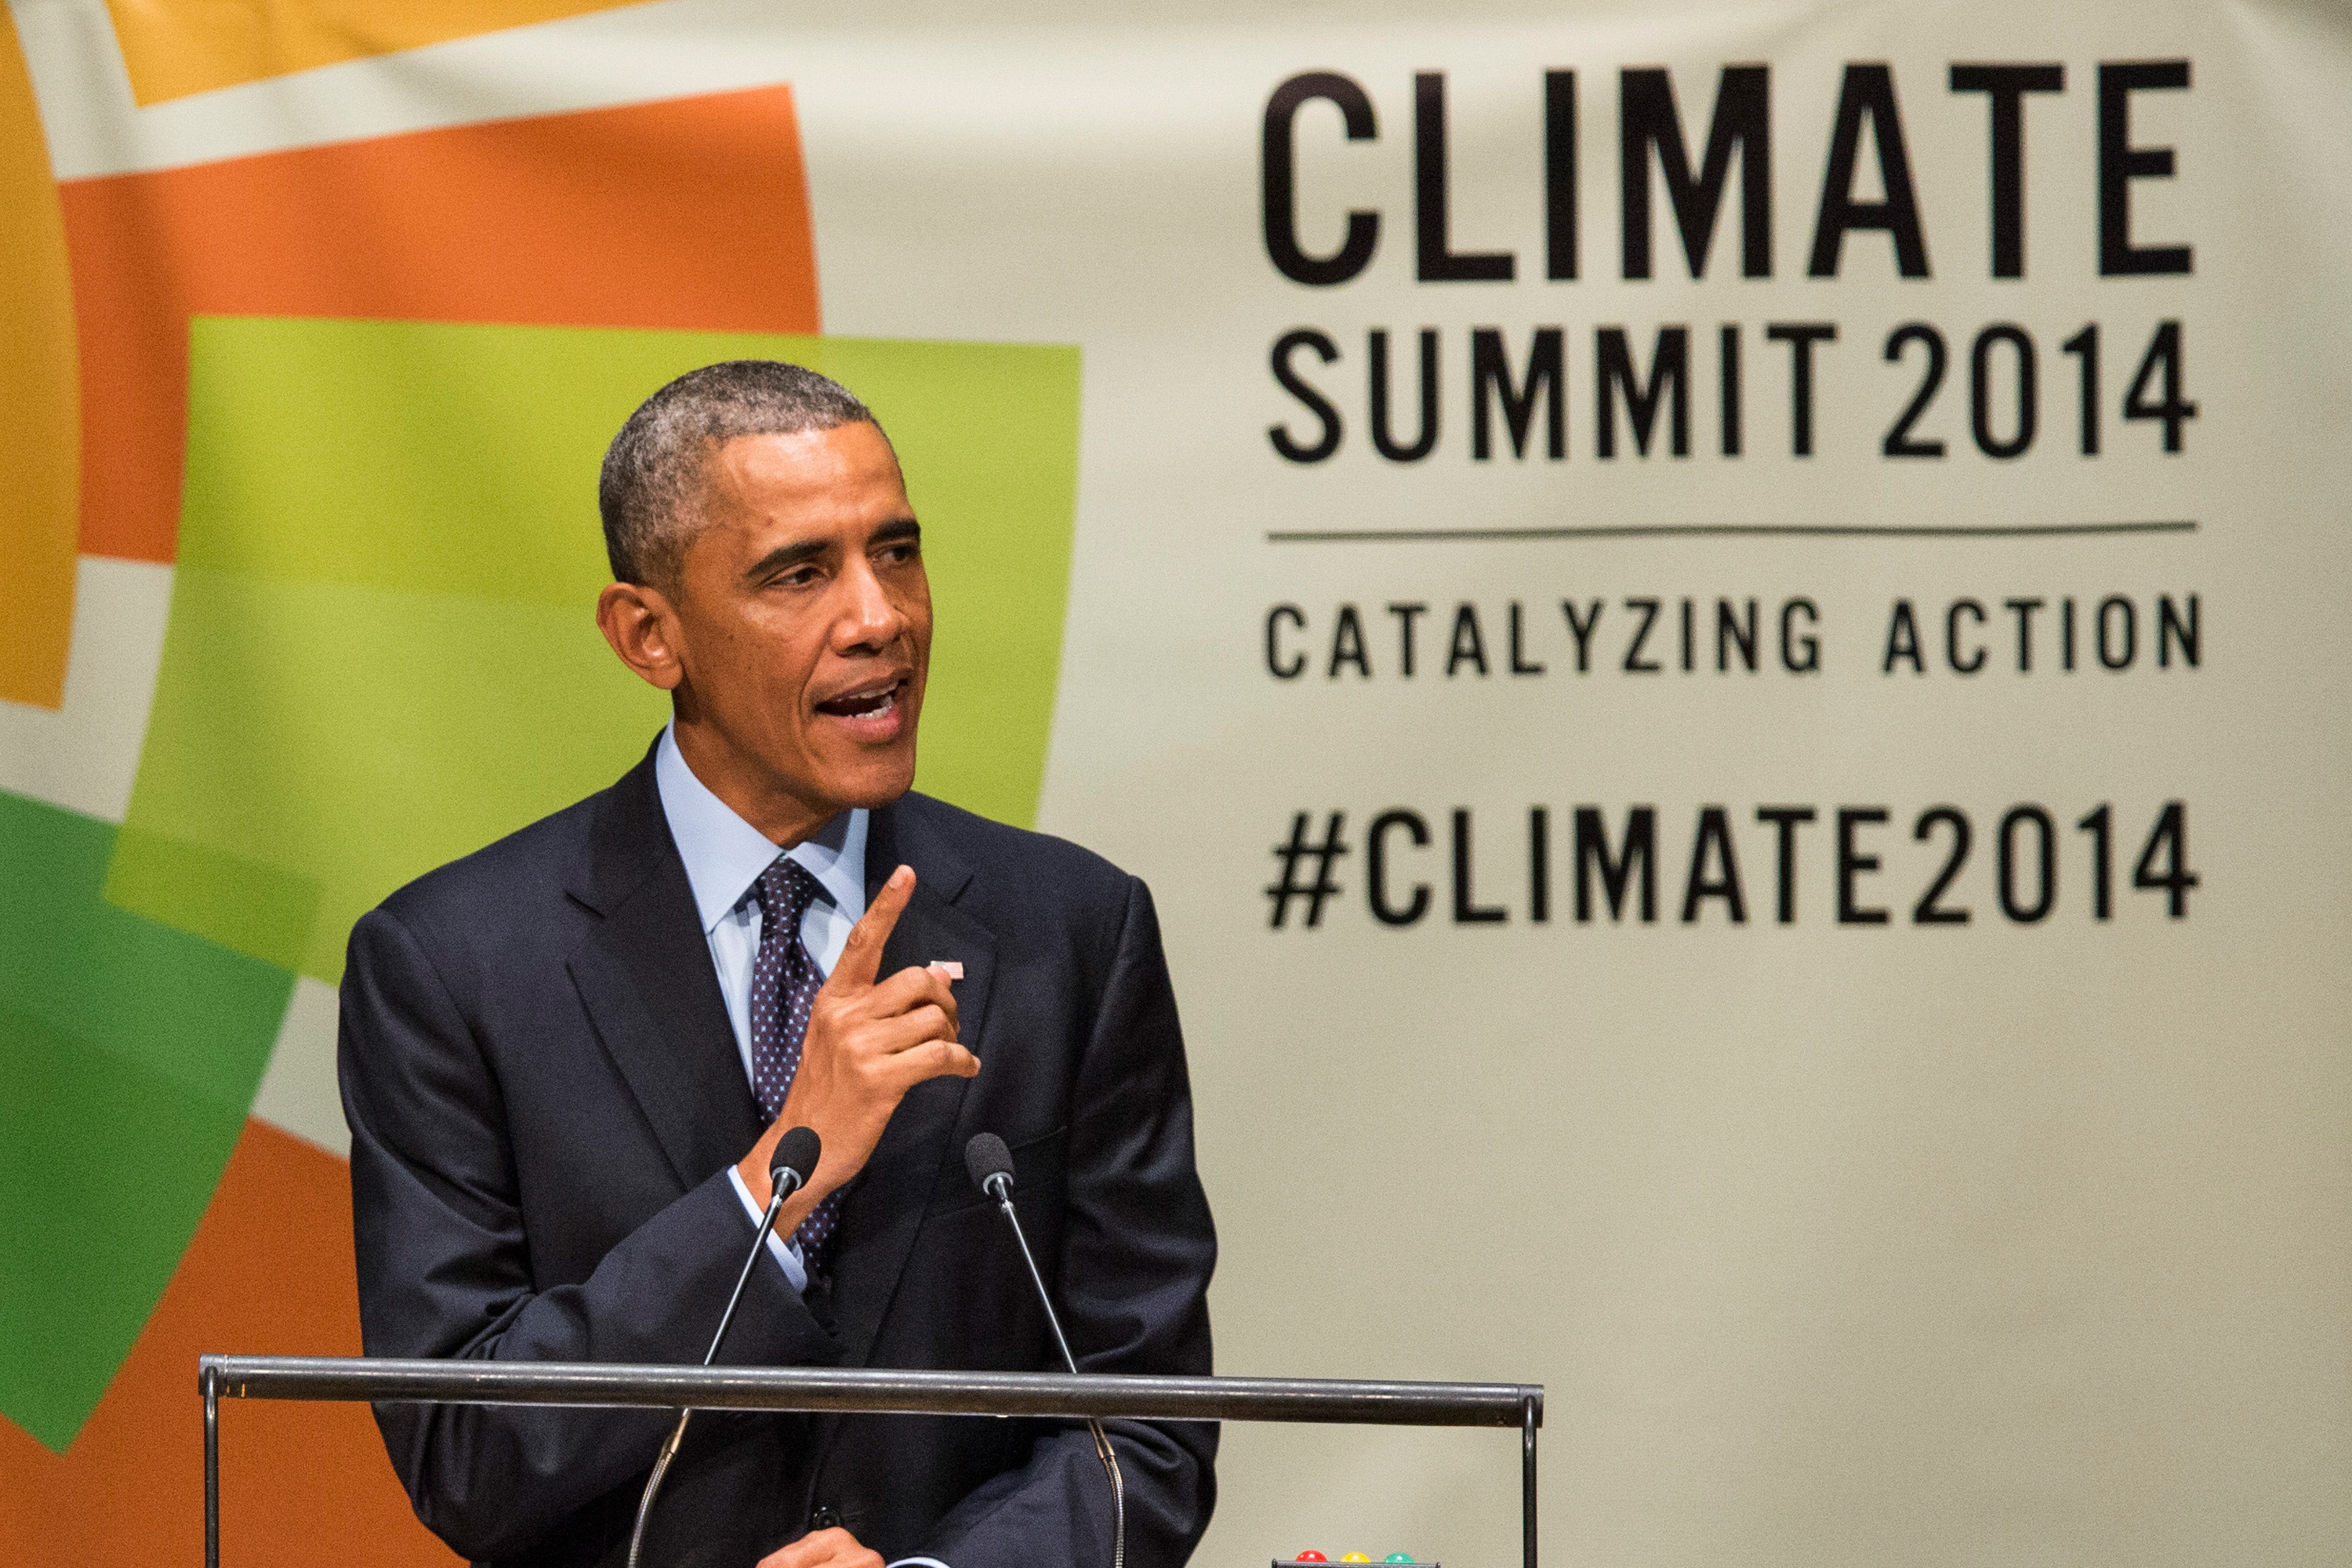 U.S. President Barack Obama speaks at the United Nations Climate Summit on September 23, 2014 in New York City.